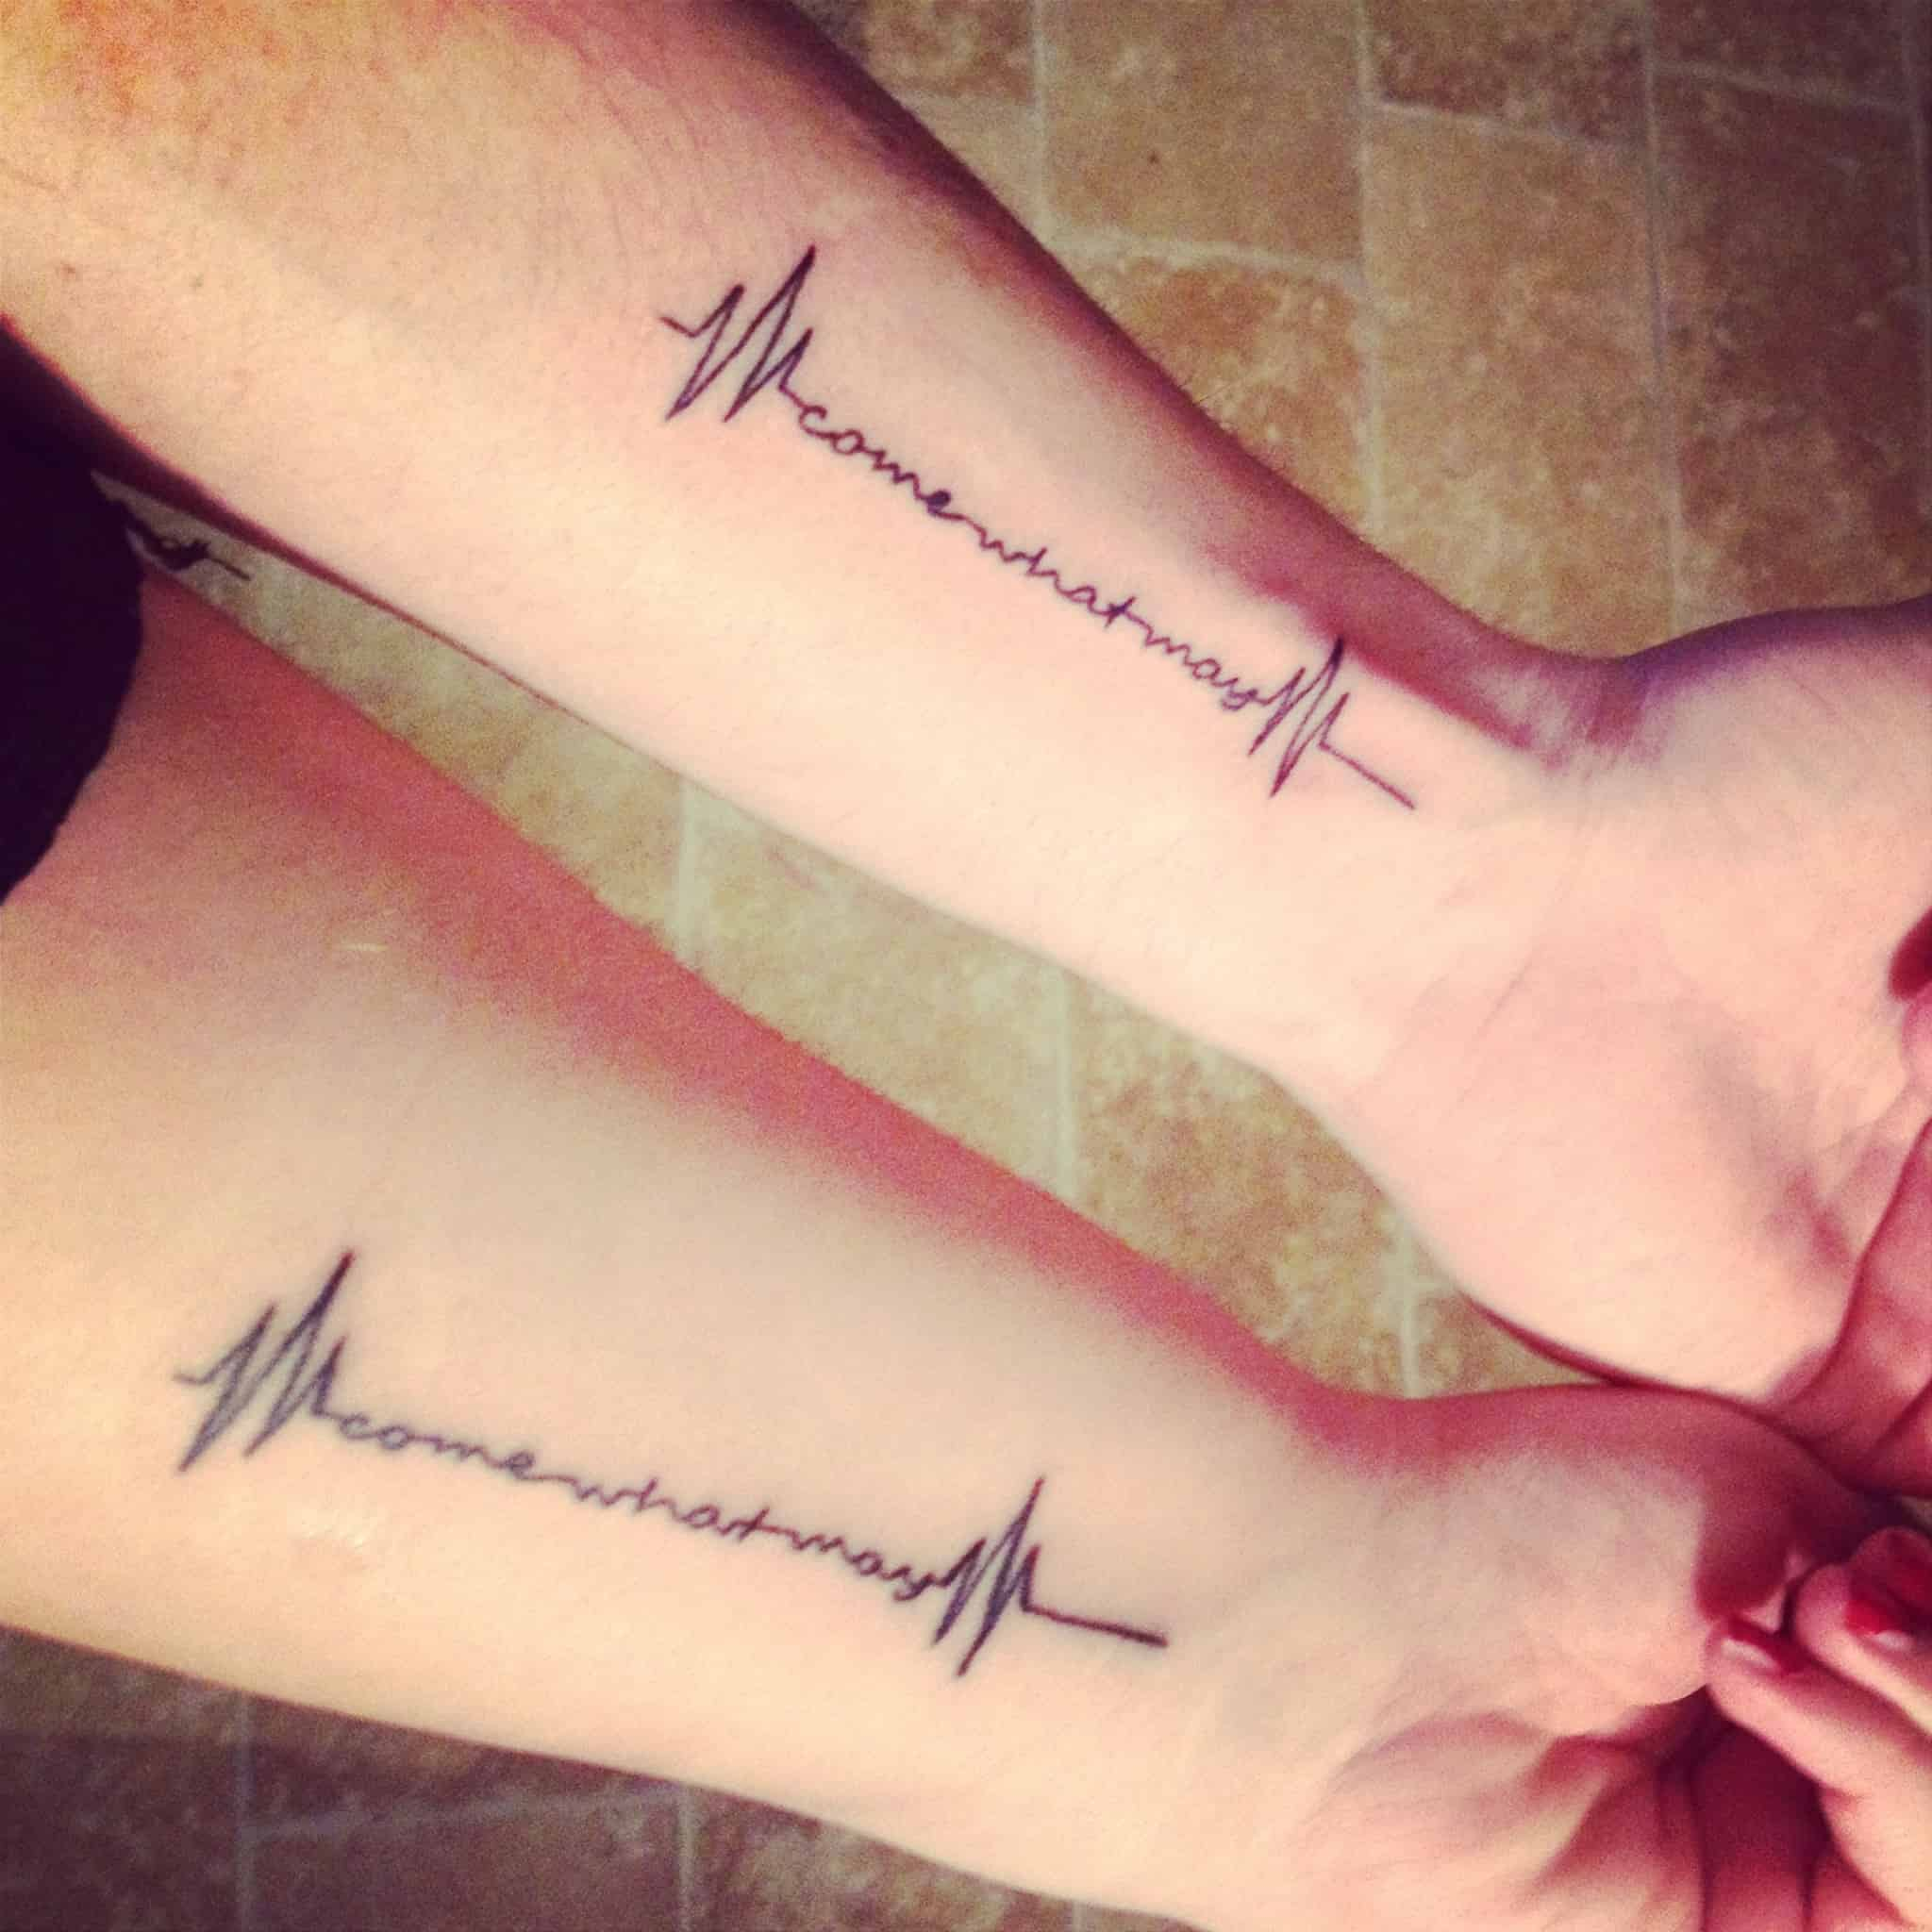 Heartbeat tattoo wedding idea